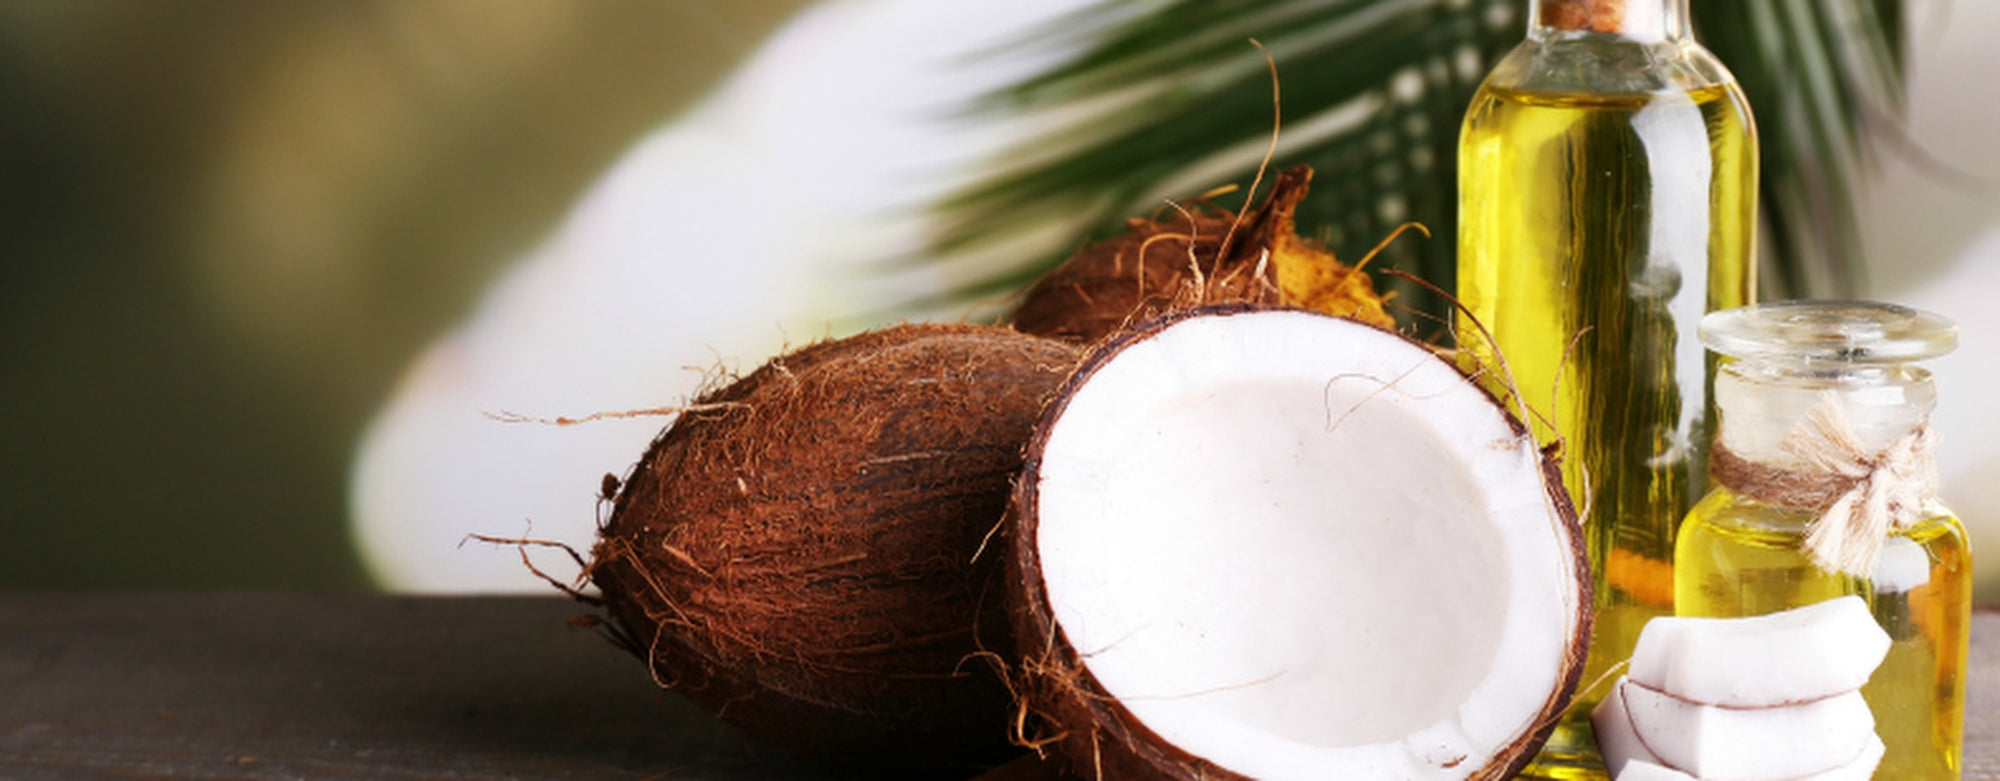 Is Coconut Oil going to kill me?